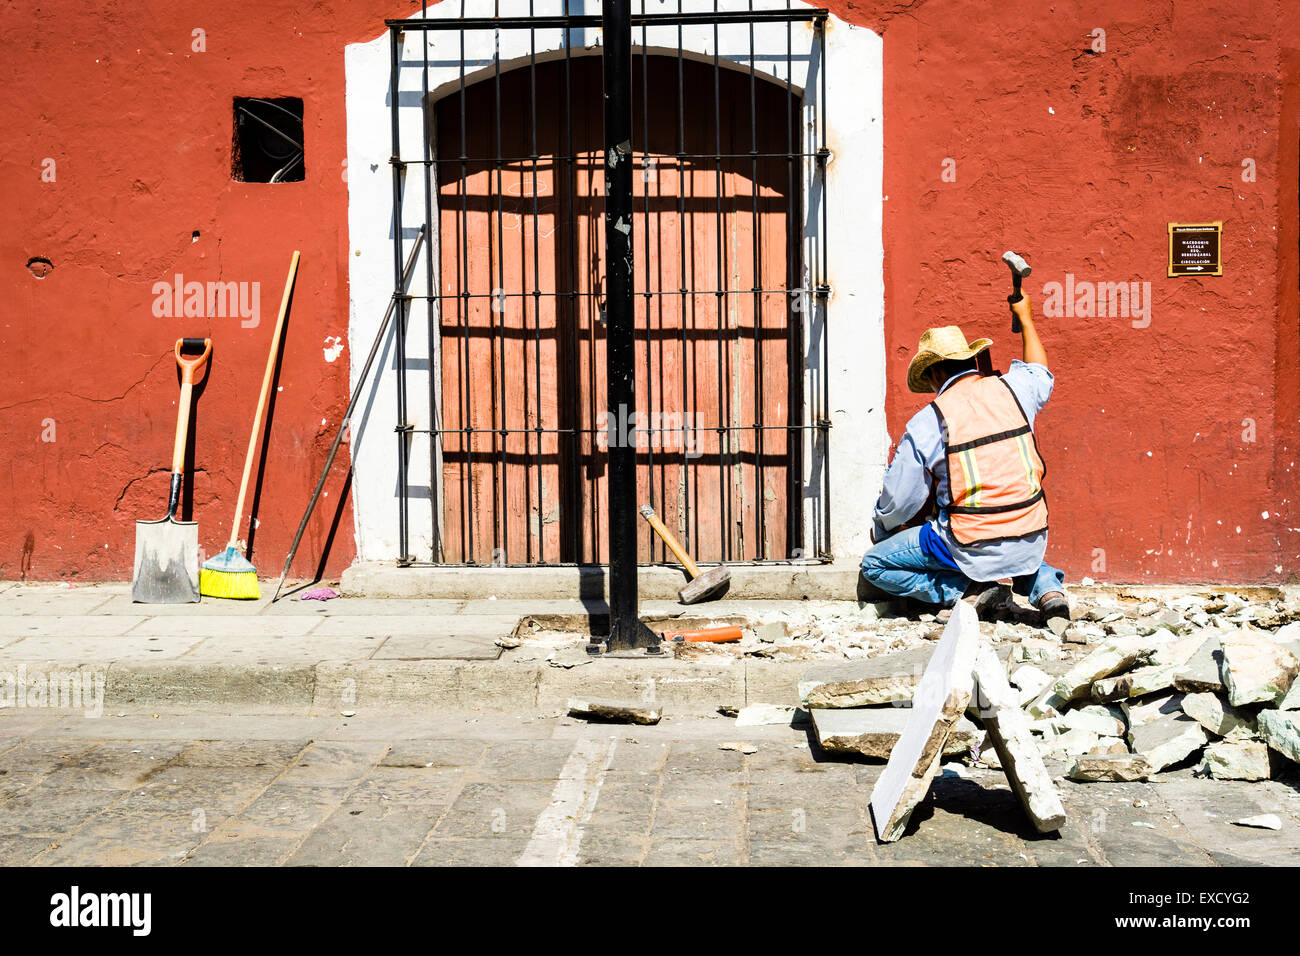 Construction worker swinging a hammer to tear up and repair stone sidewalk in the hot afternoon sun - Stock Image